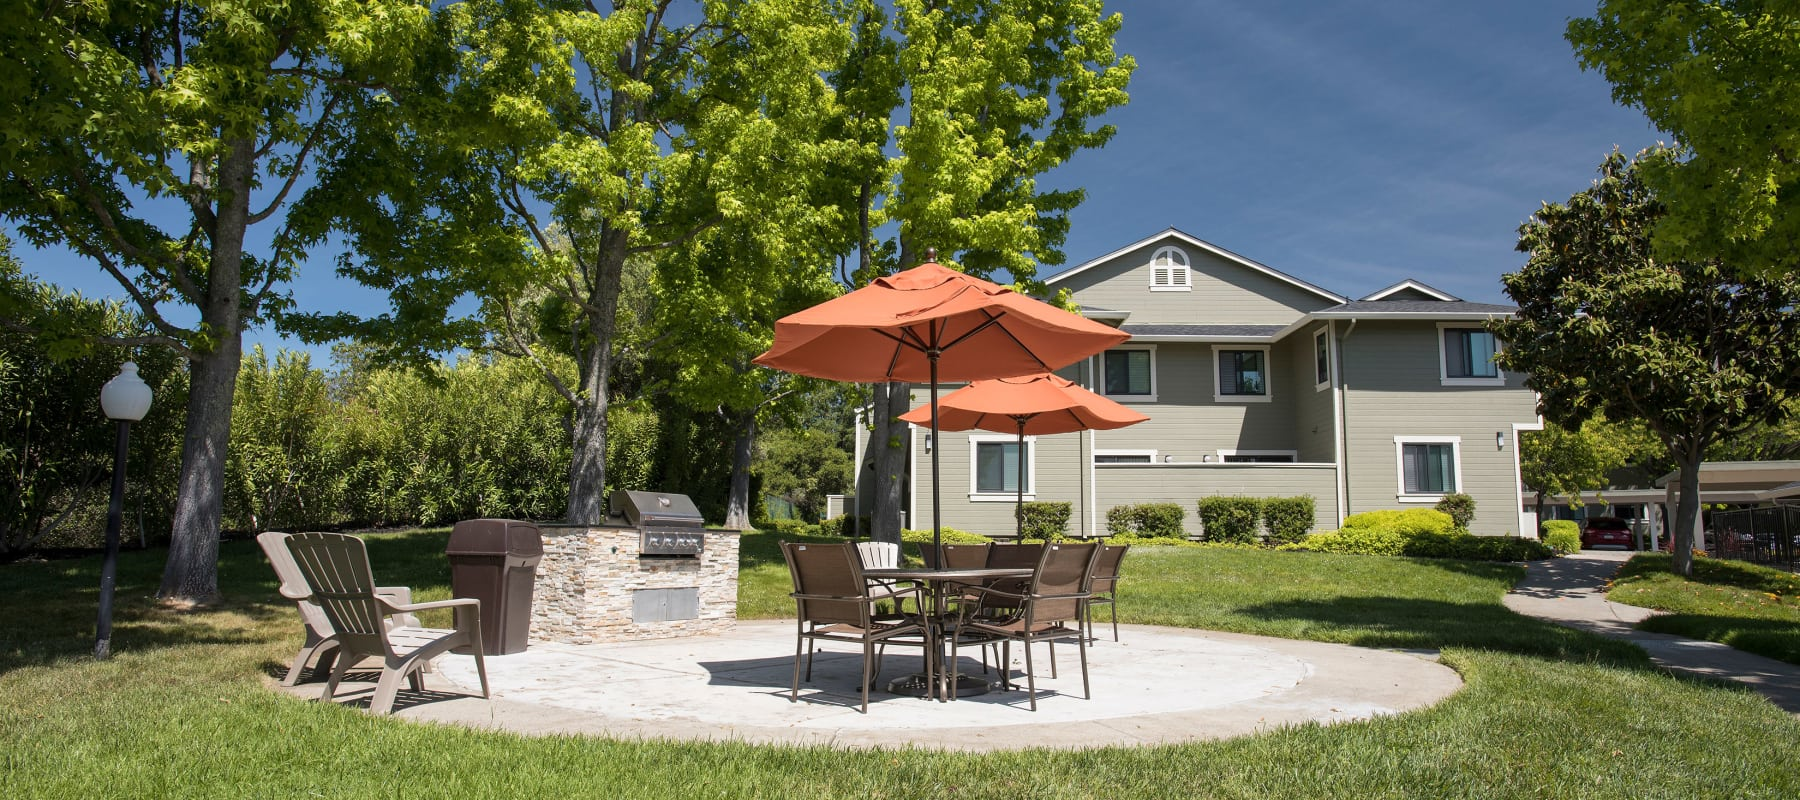 BBQ and Picnic area at Ridgecrest Apartment Homes in Martinez, CA